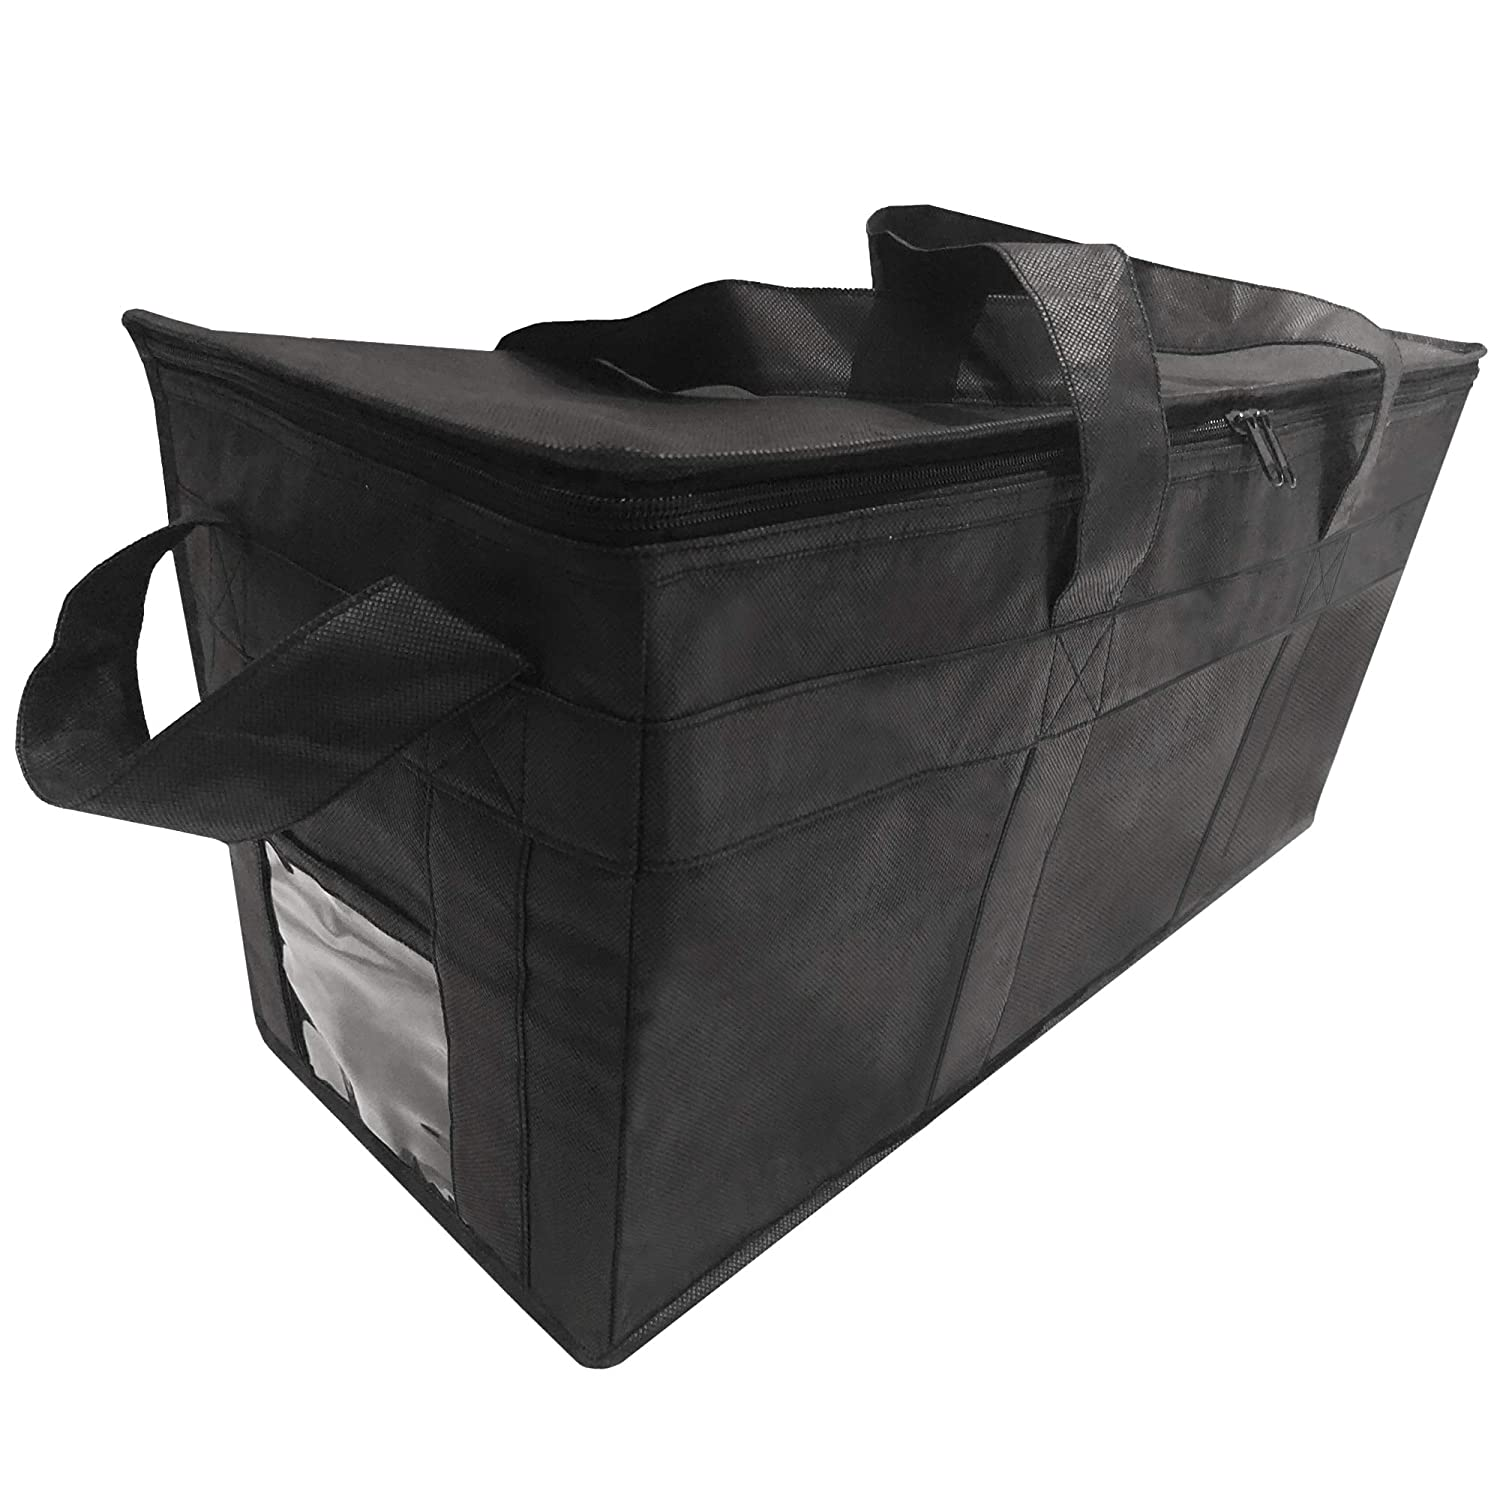 "Insulated Delivery Grocery Bag Carrier, 22"" X10"" X10"", Ideal for Uber Eats, Postmates, Doordash, Catering, and Grocery Shopping"